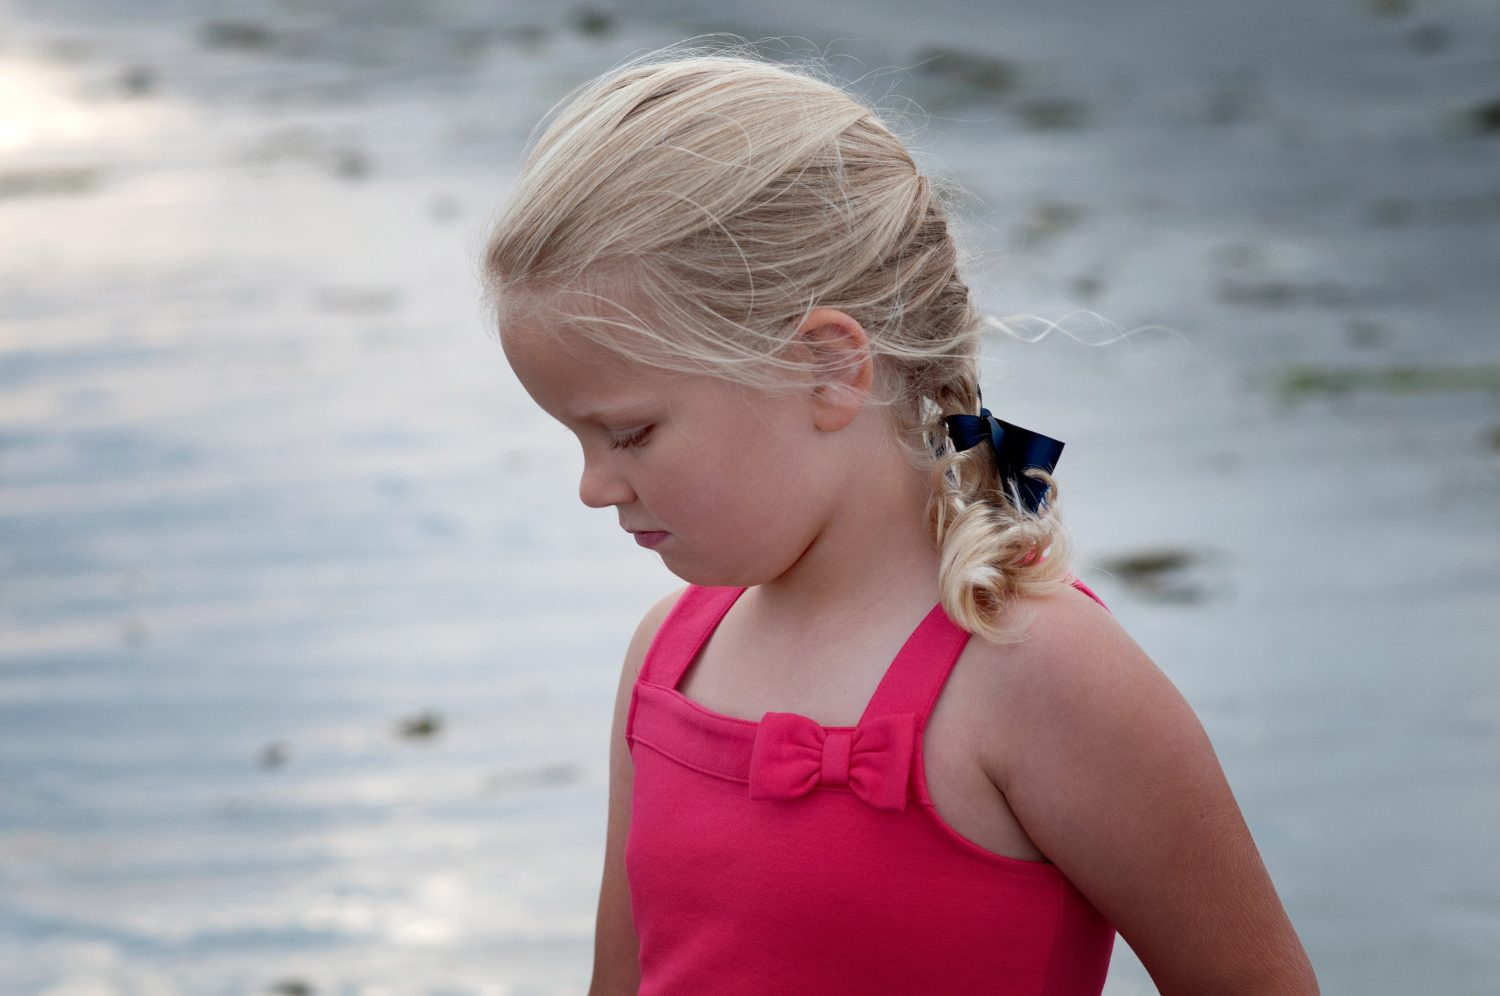 profile photo of young girl wearing a single braid